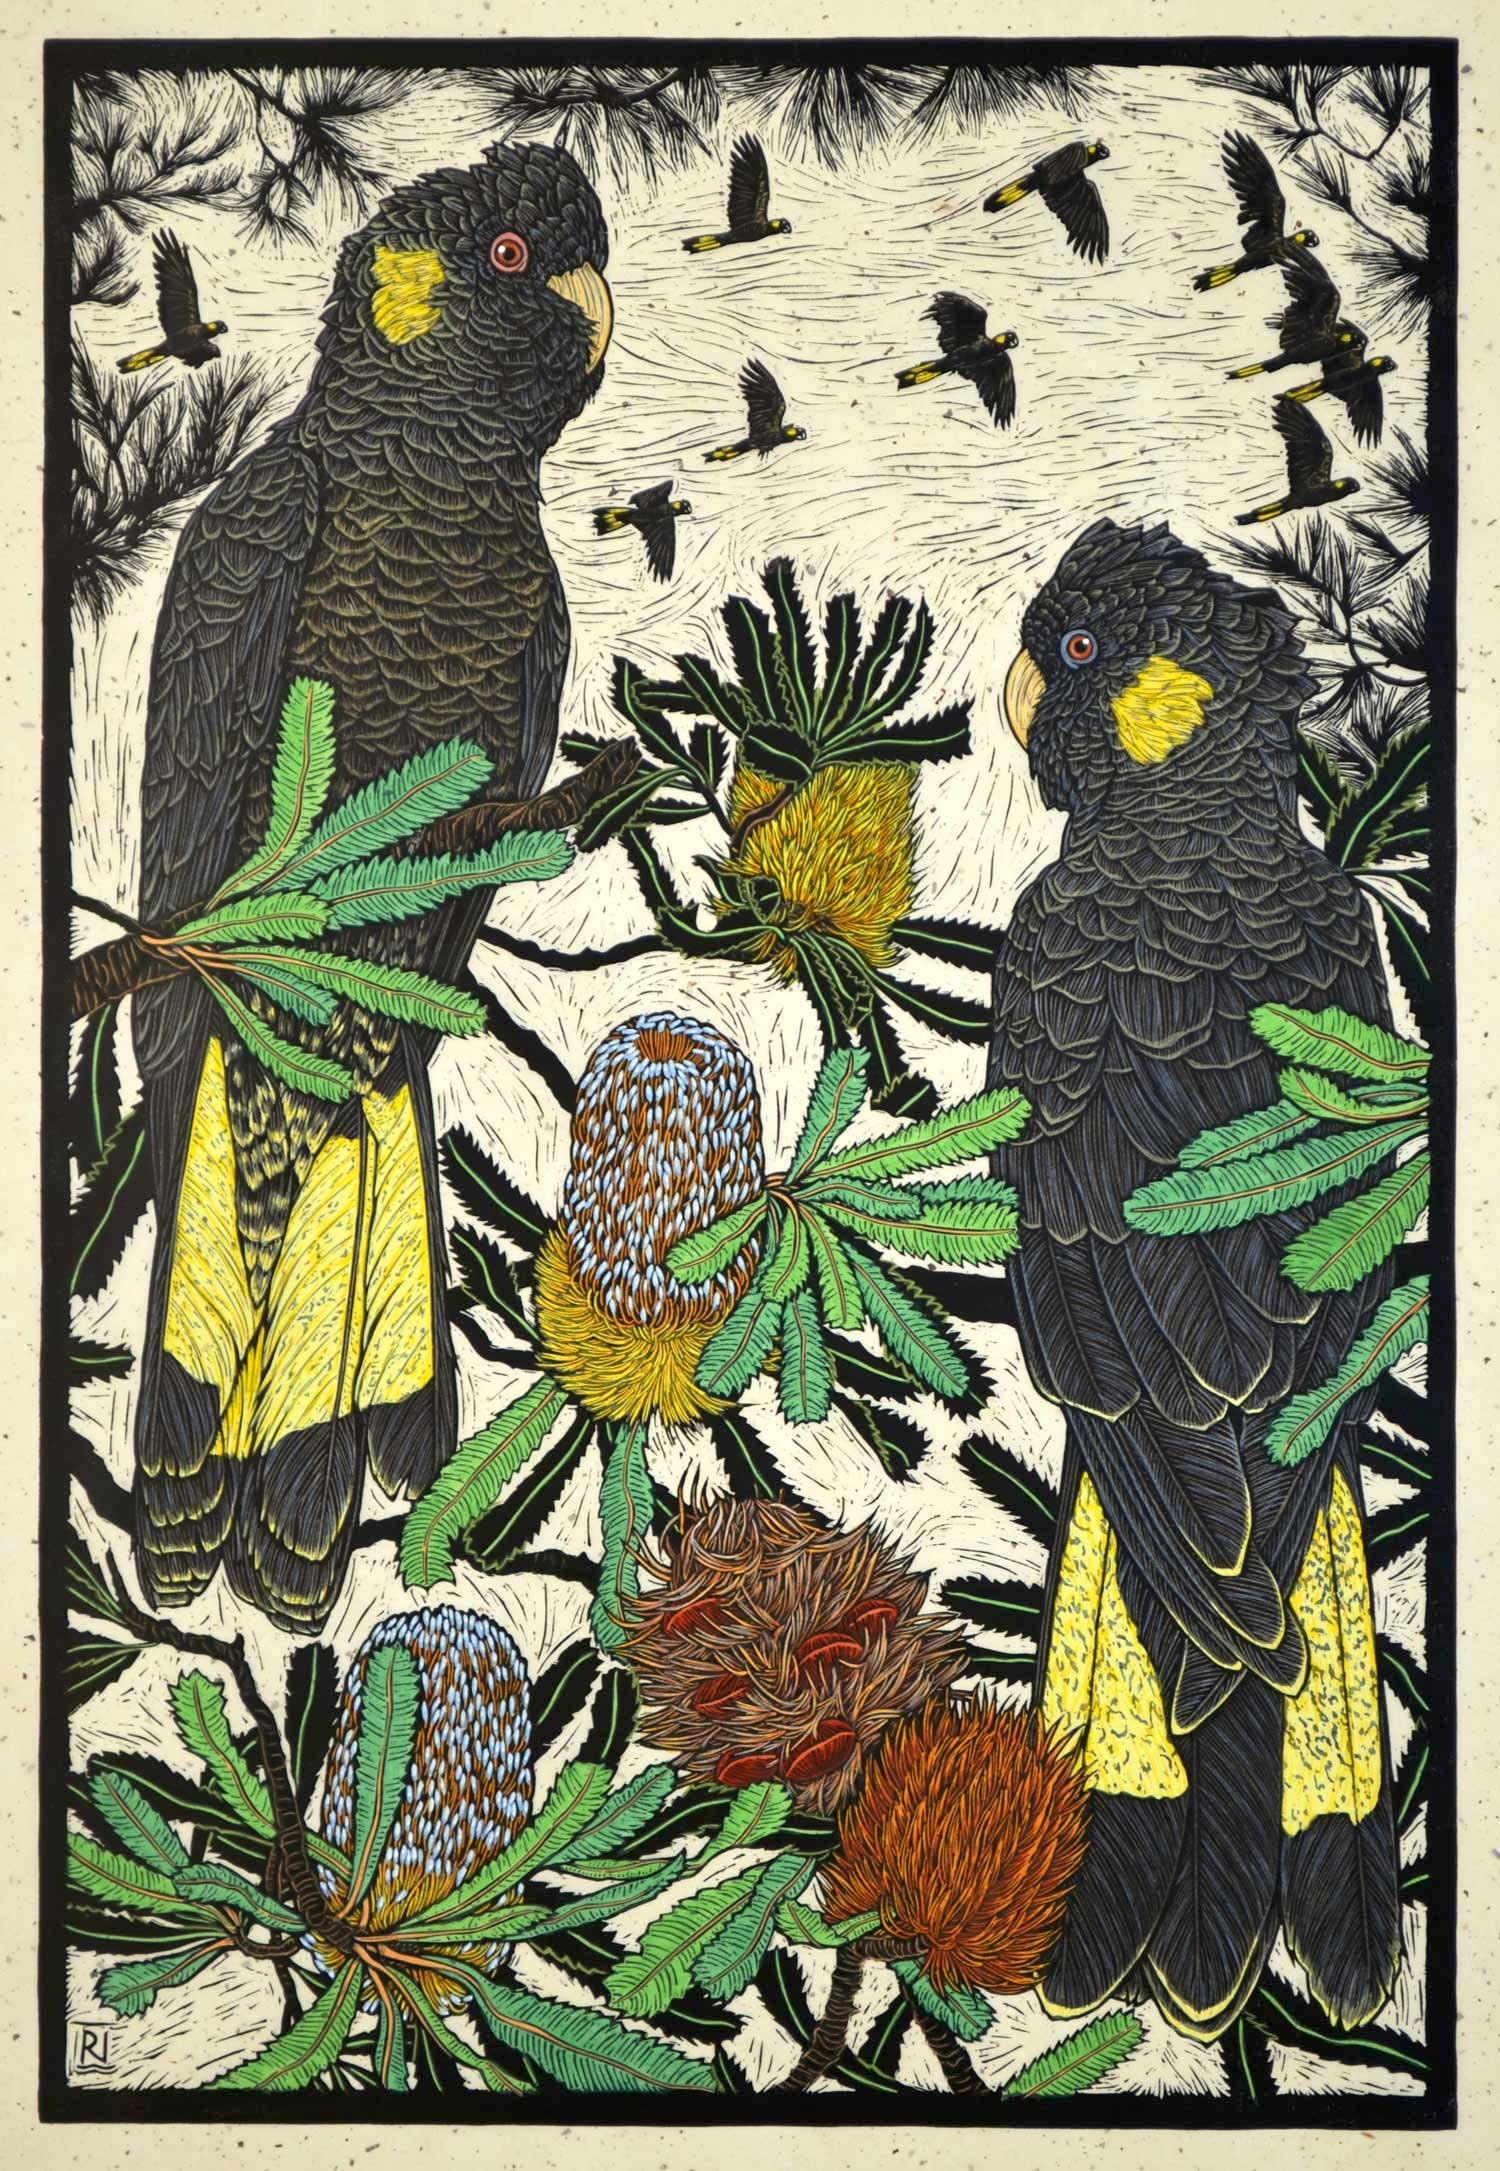 Yellow-tailed black Cockatoo and Banksia  75.5 x 50.5 cm, Edition of 50  Hand-coloured linocut on handmade Japanese paper  $1,700